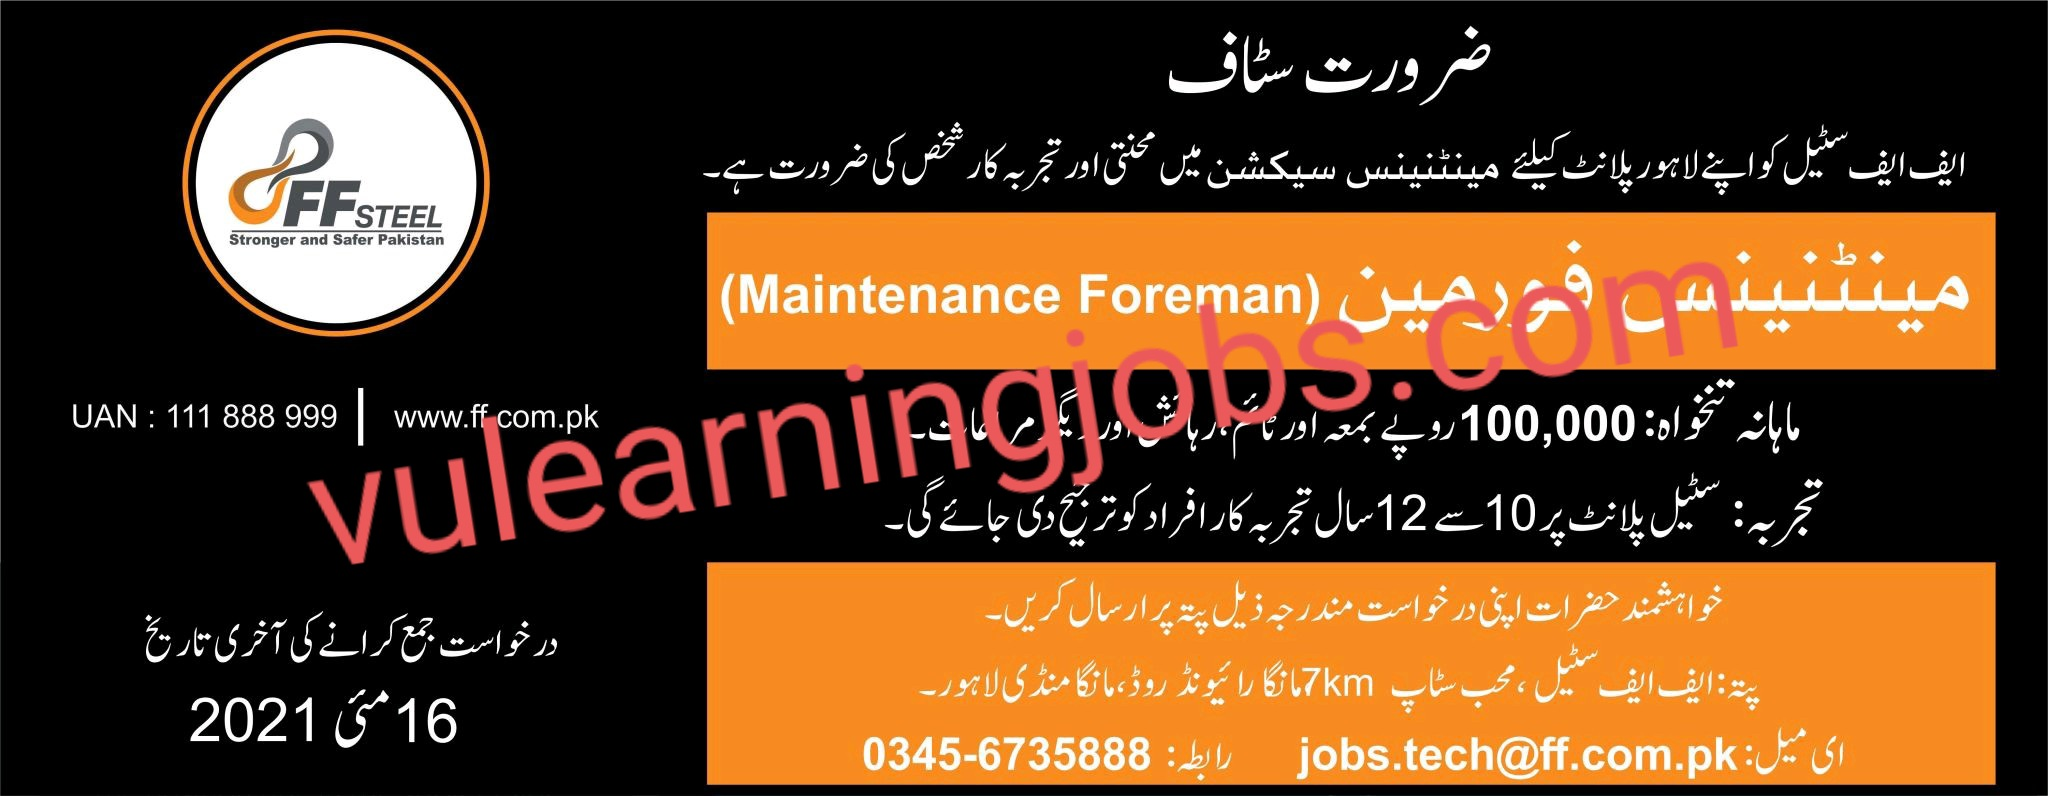 FF STEEL Jobs In Pakistan May 2021 Latest | Apply Now